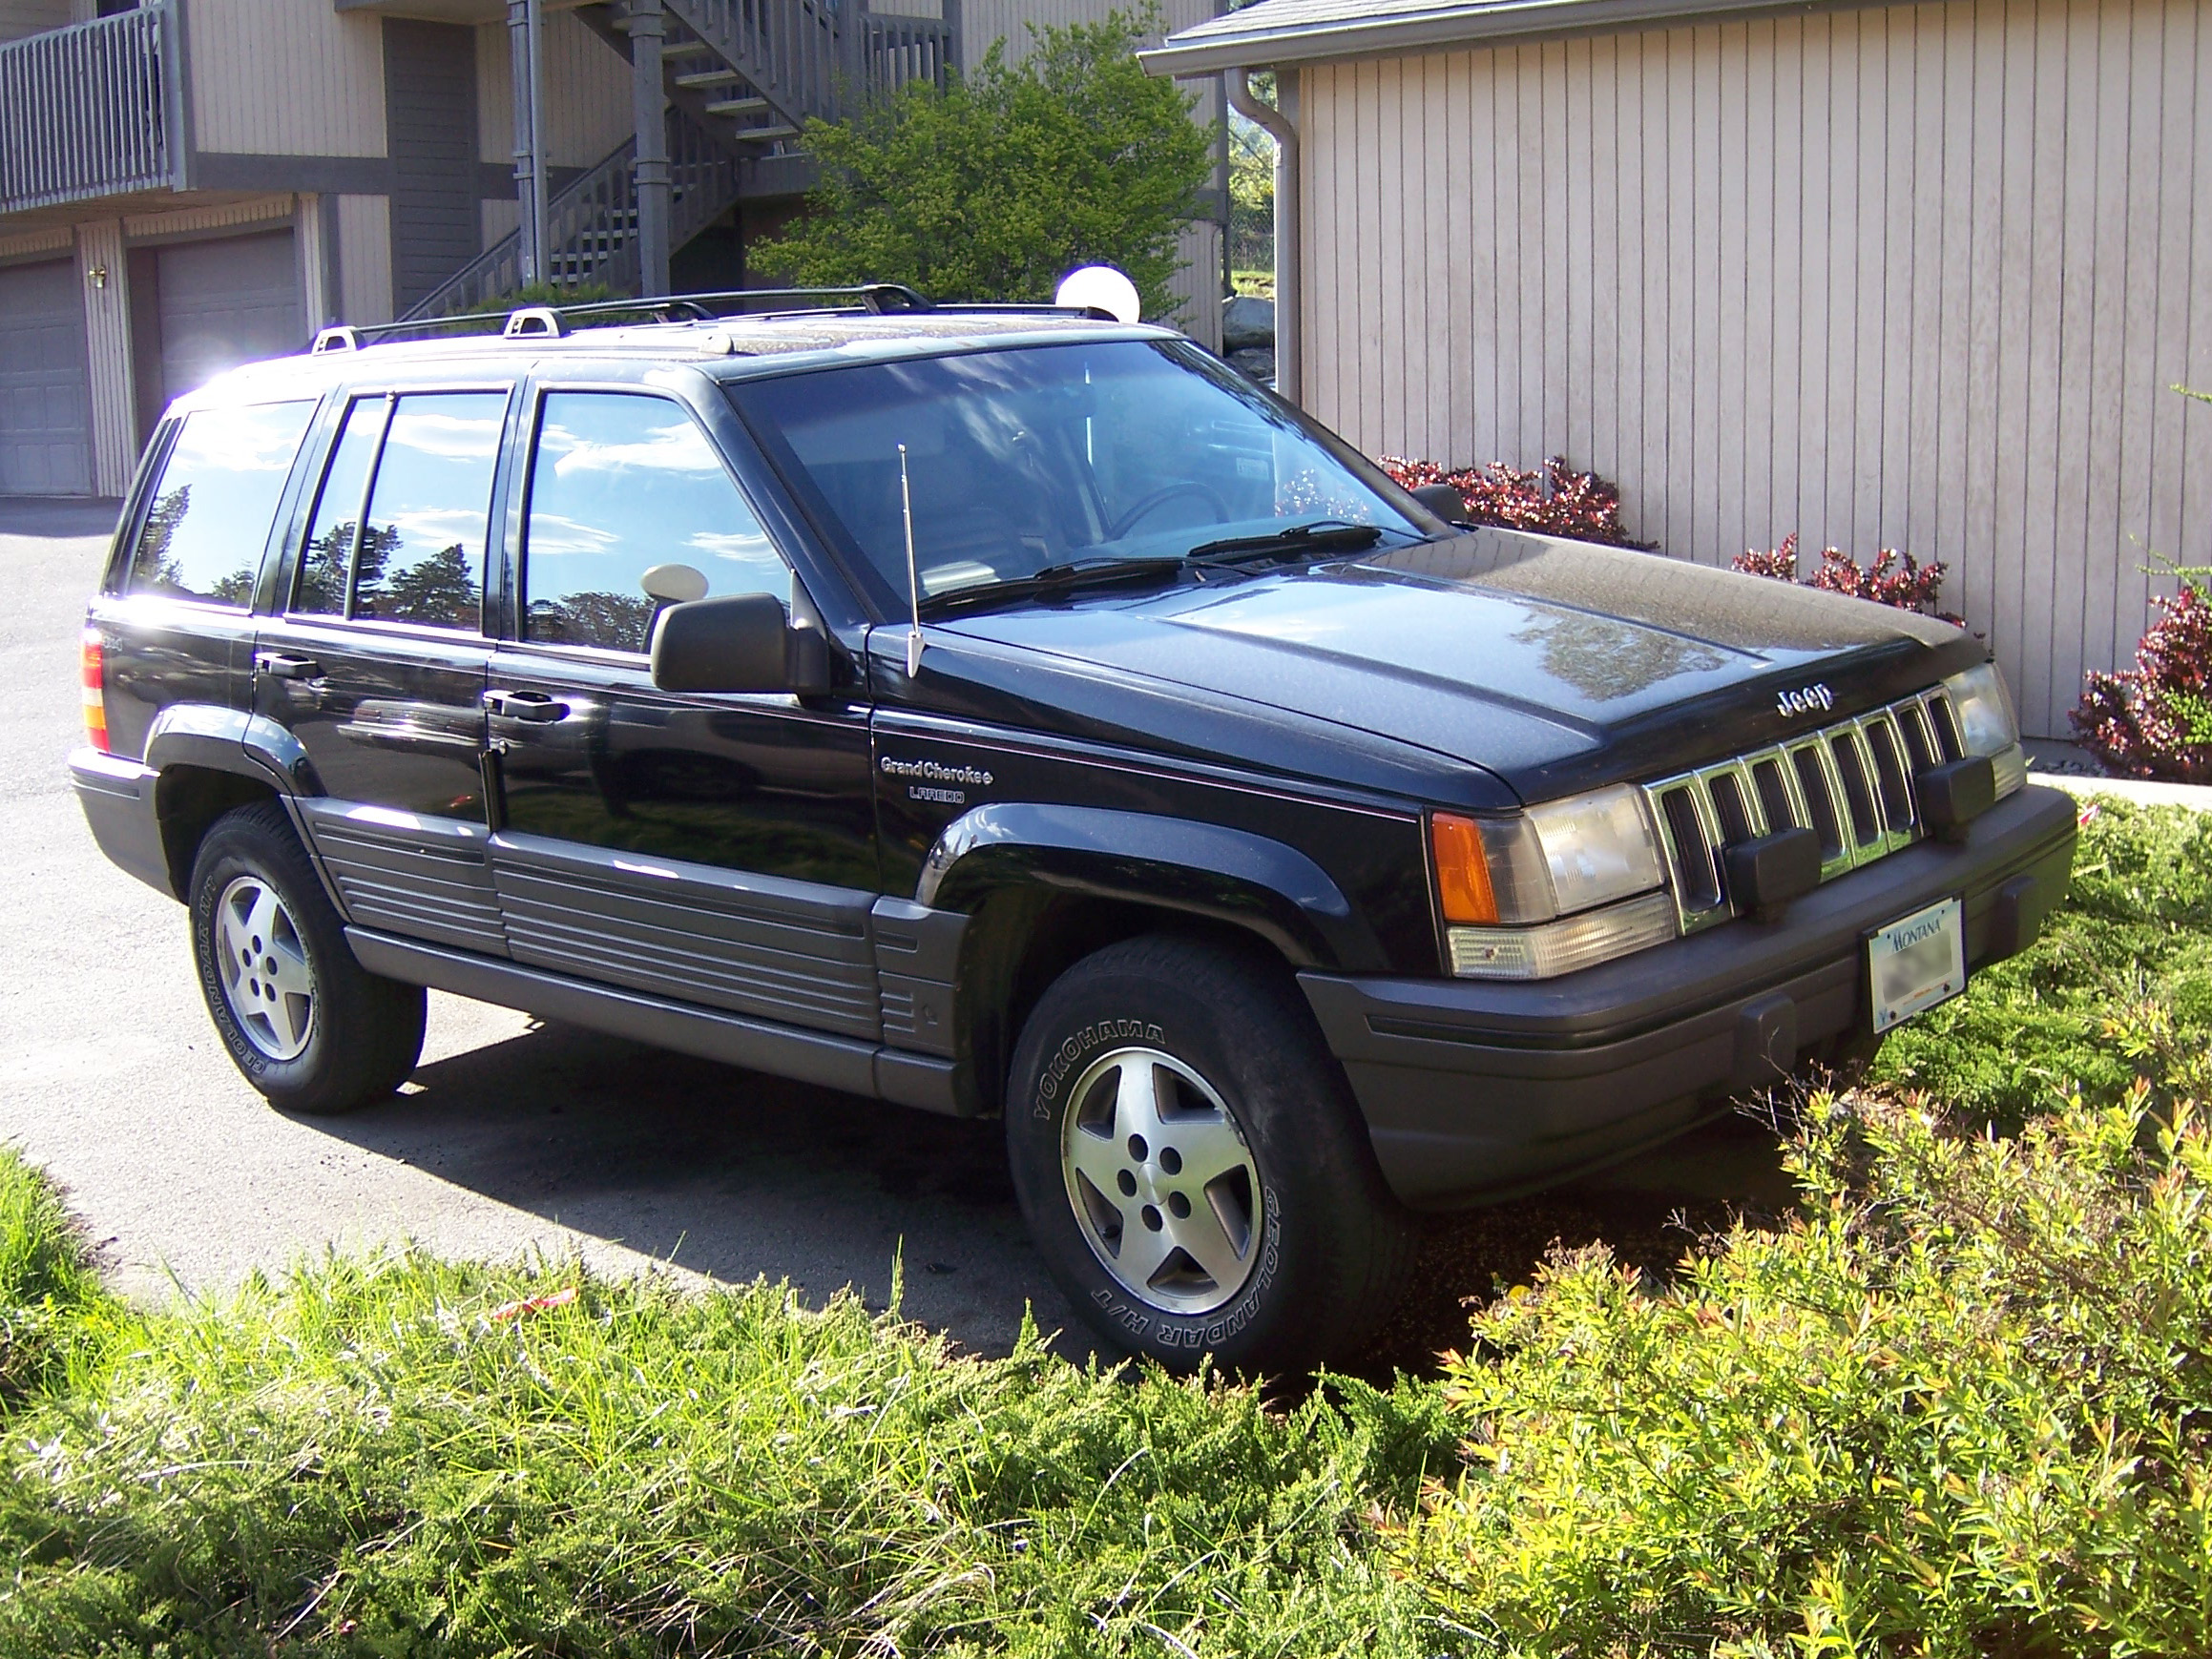 E34 Fuel Pump Relay Which One Bmw Driver Forums Bmw E34 Fuel Pump Relay Location as well Stock Illustration 4x4 Off Road Jeep Cartoon also Jeep Tj Stereo Wiring Diagram further 98 Jeep Cherokee Rear Hatch Latch Bolt Size also Veiculos. on 94 jeep cherokee